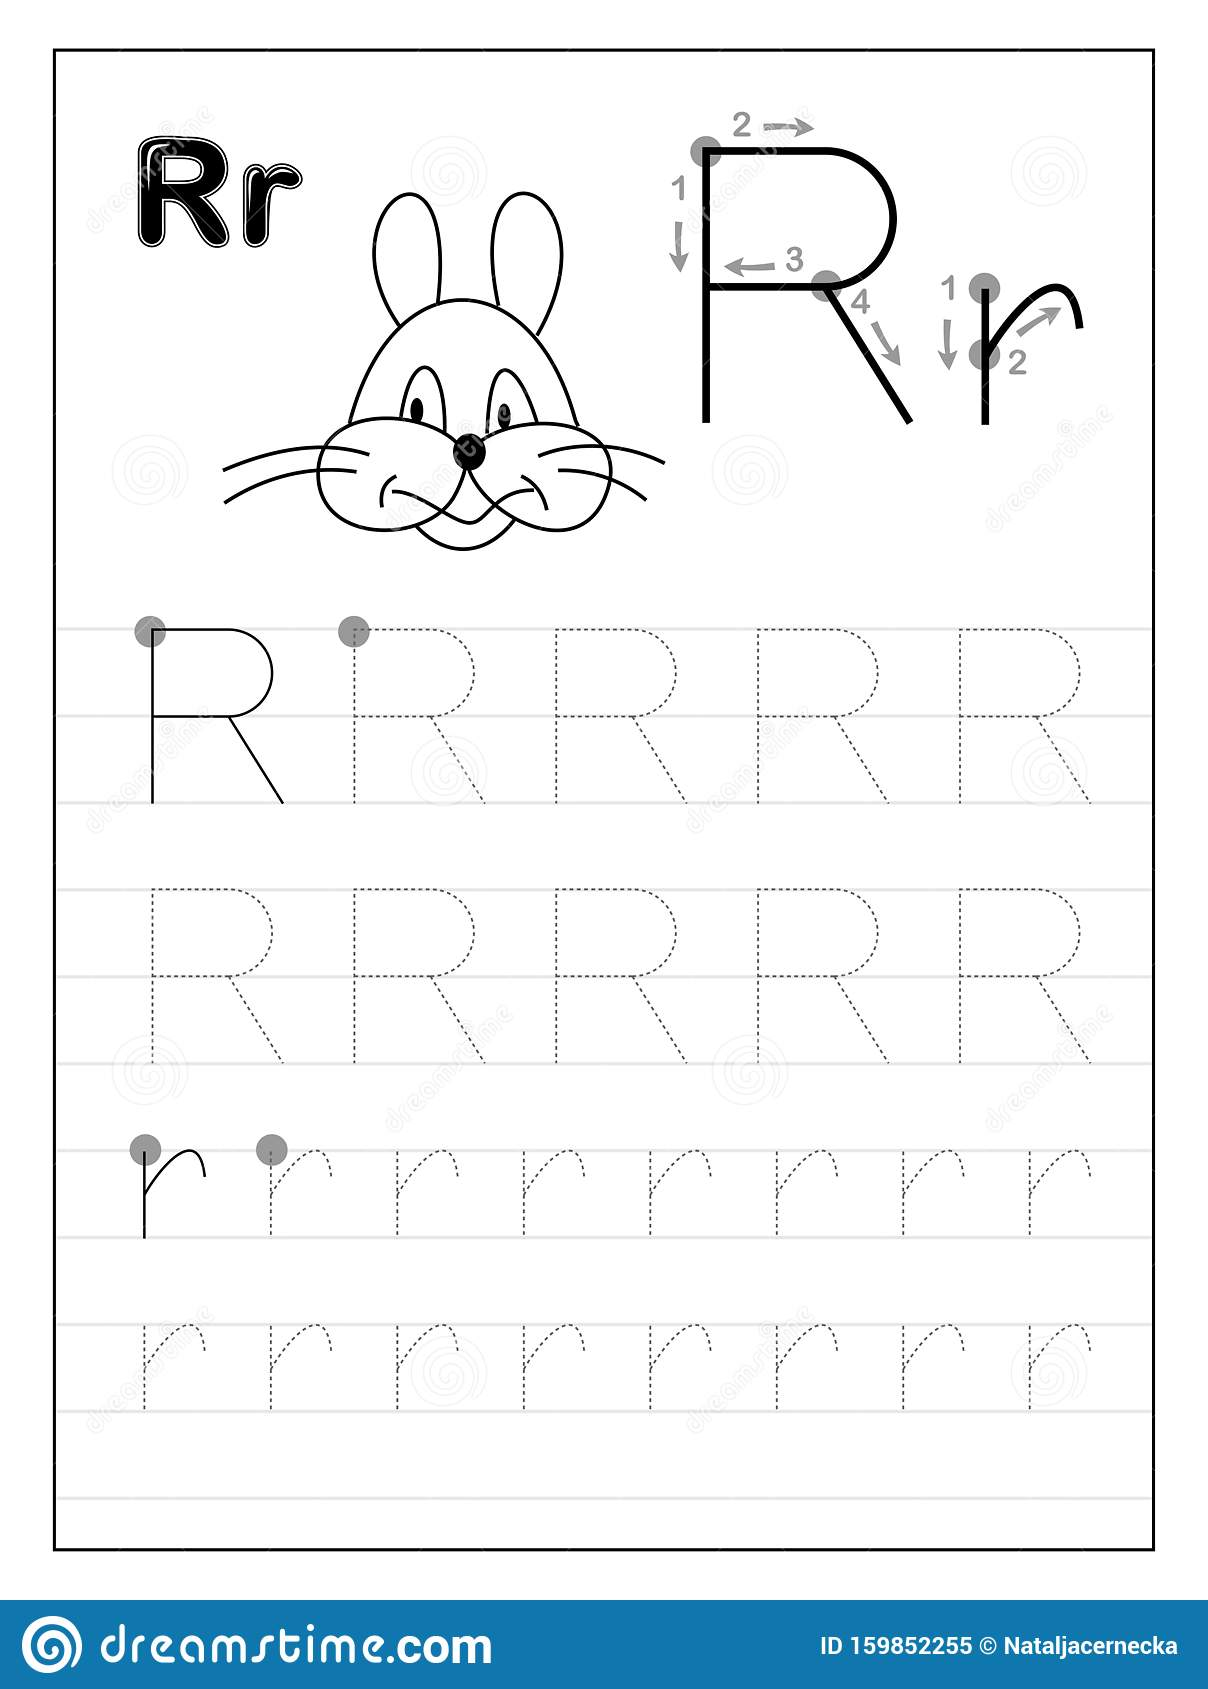 Tracing Alphabet Letter R Black And White Educational